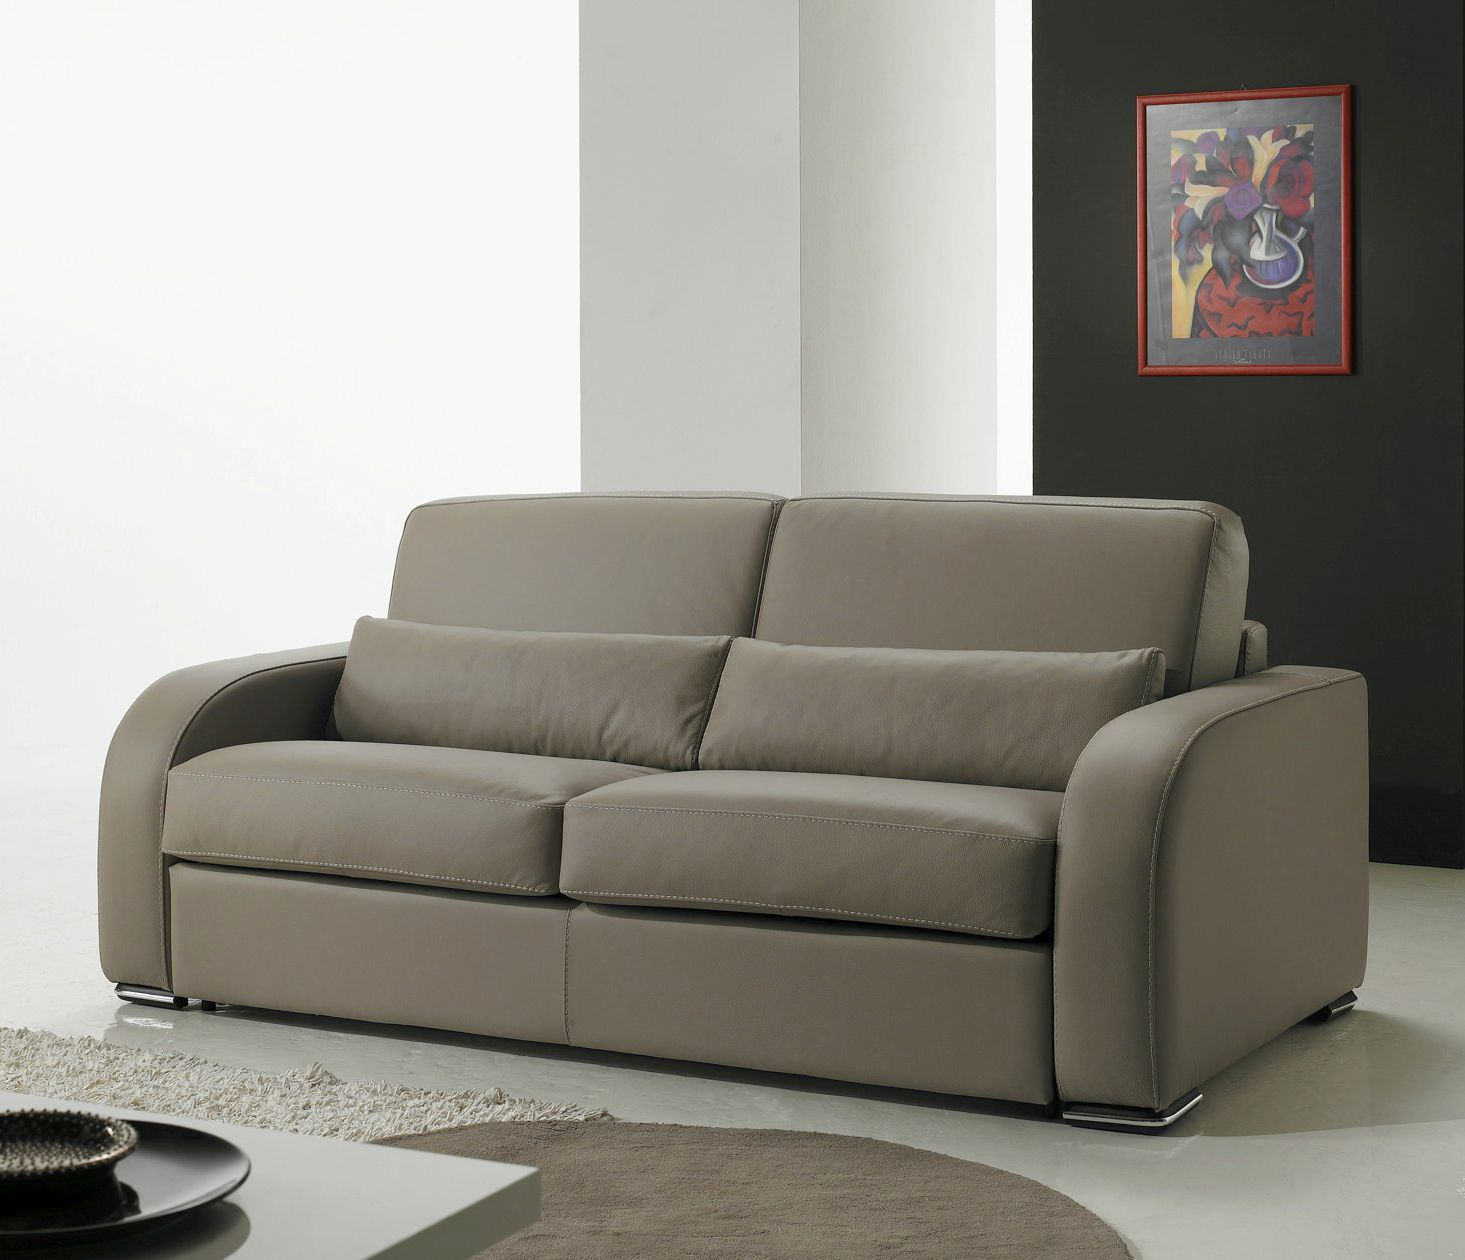 Bettsofa Florida Bettsofa Modern Leder Stoff Florida Very Sofa